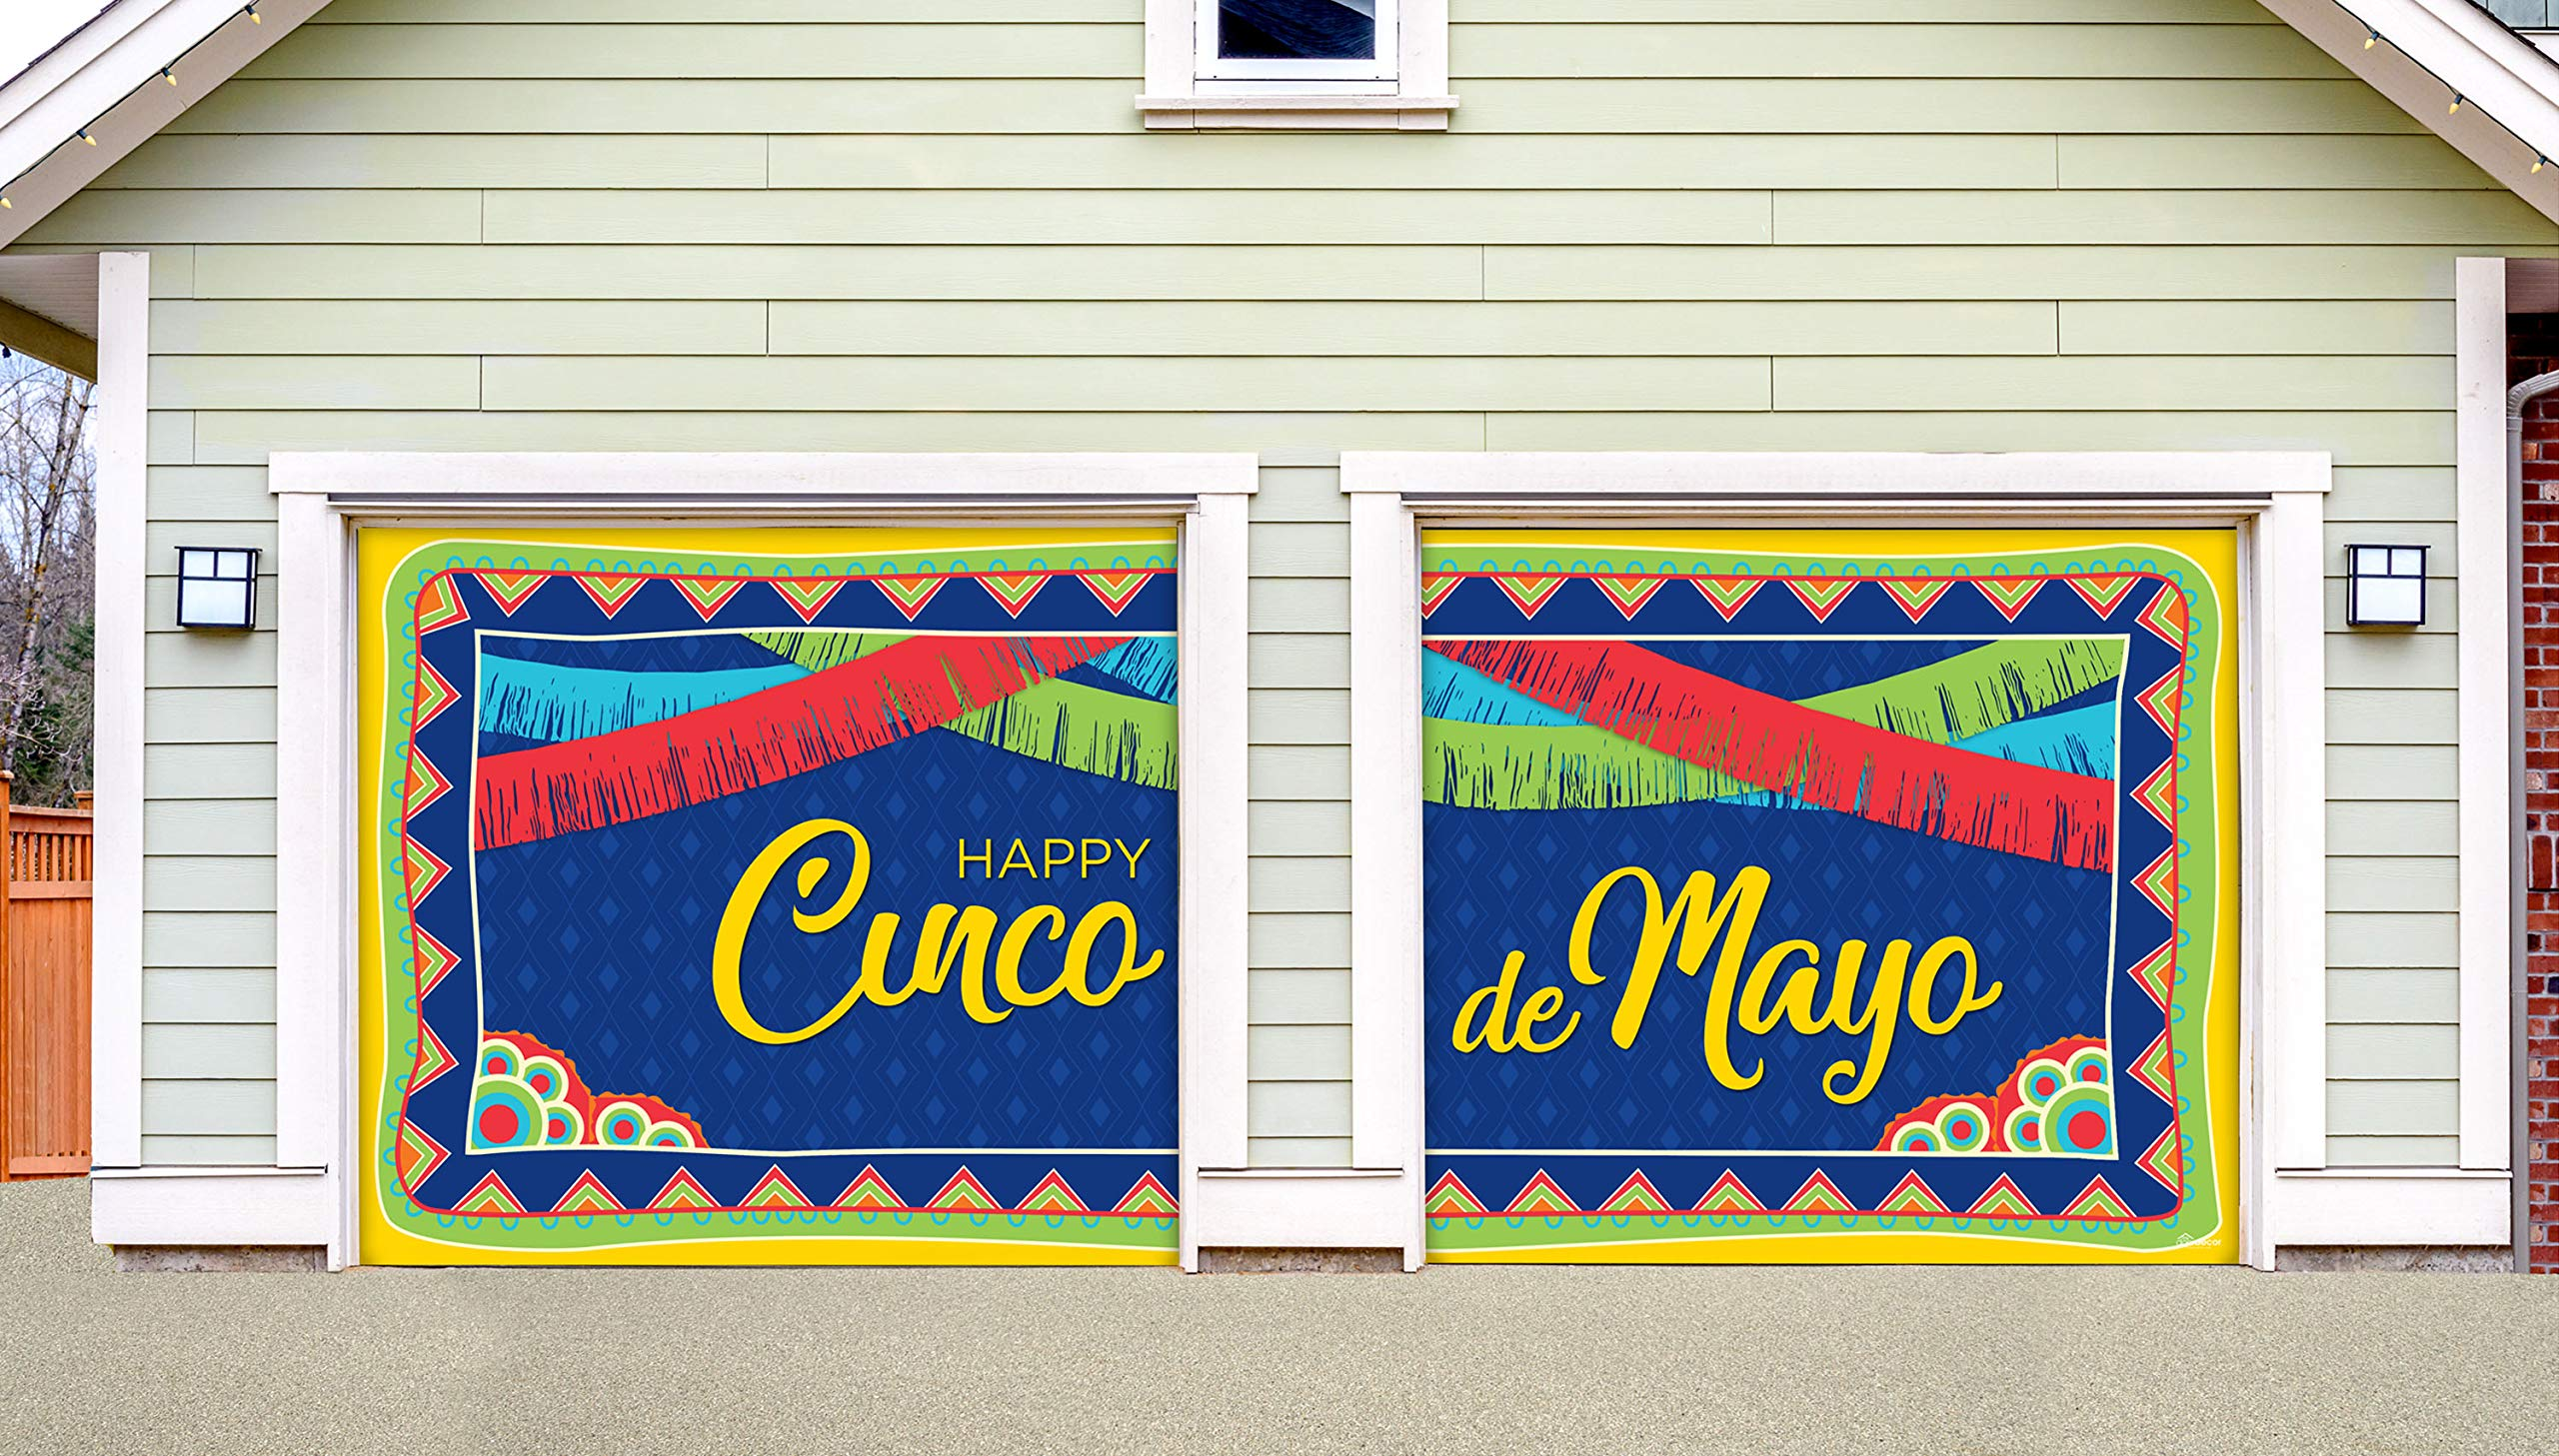 Victory Corps Happy Cinco de Mayo Pattern - Holiday Garage Door Banner Mural Sign Décor 7'x 8' Split Car Garage - The Original Holiday Garage Door Banner Decor